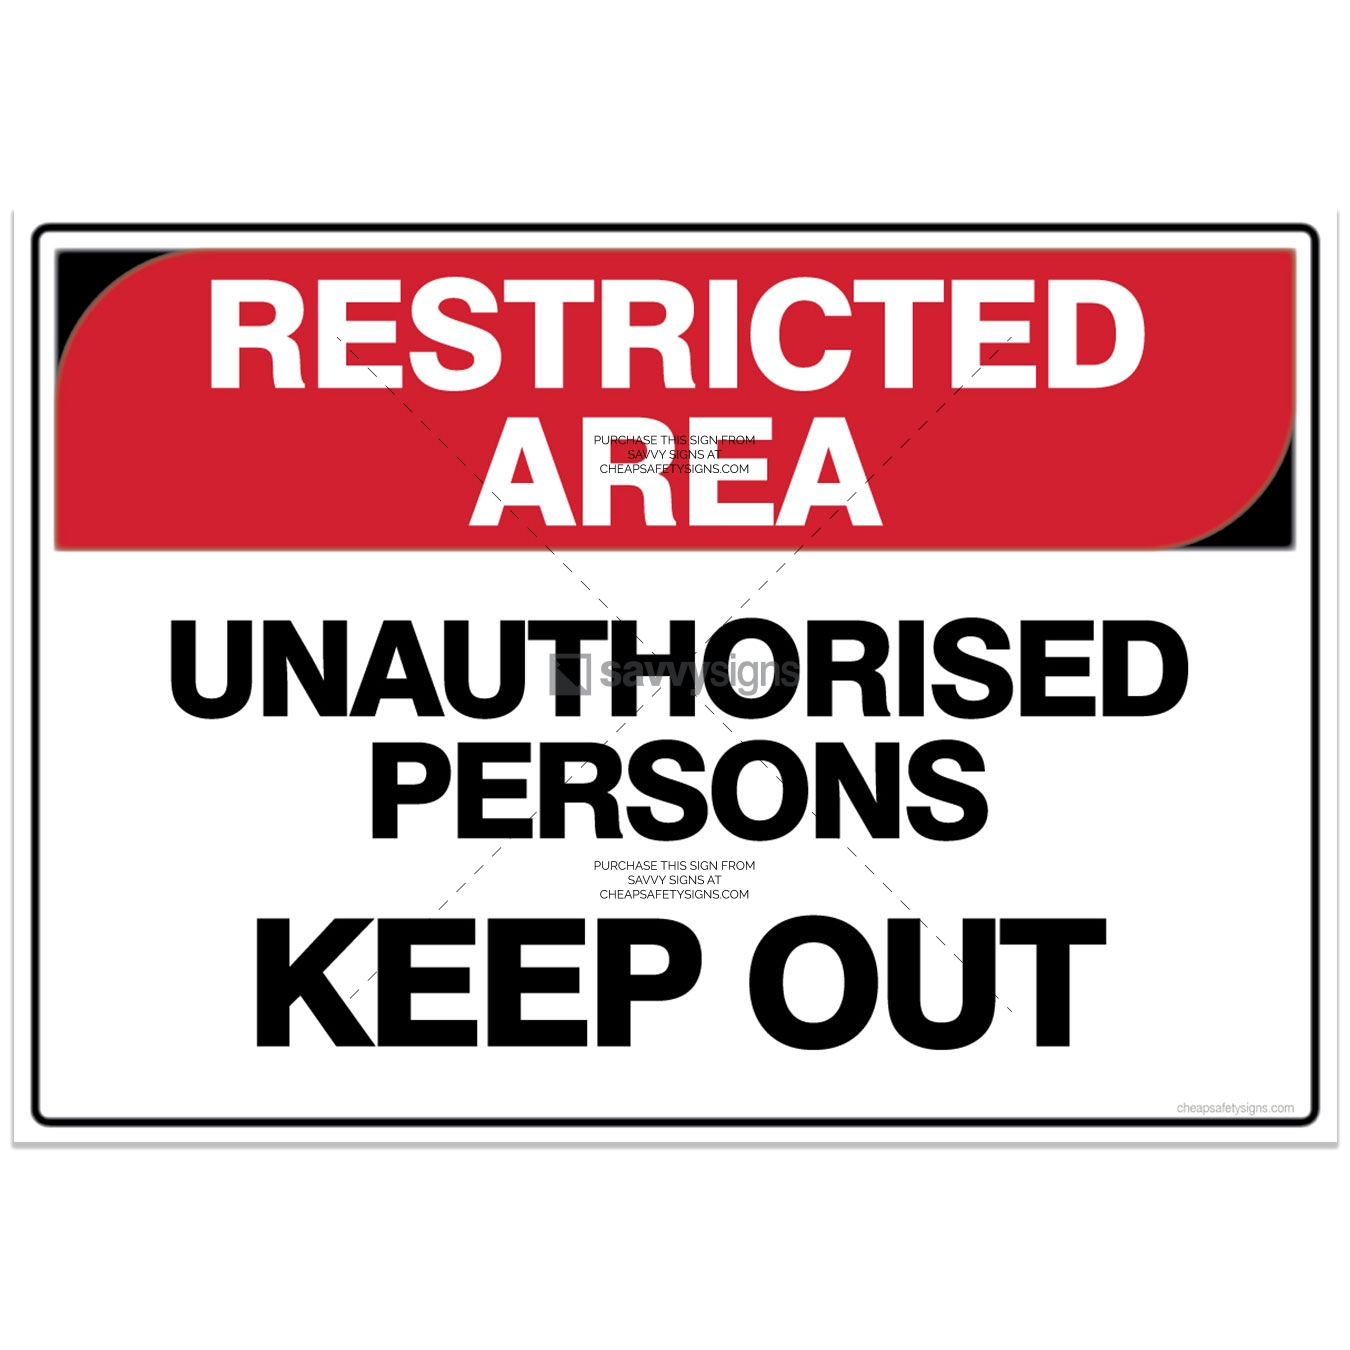 SSRES3041-RESTRICTED-AREA-Workplace-Safety-Signs_Savvy-Signs_v2